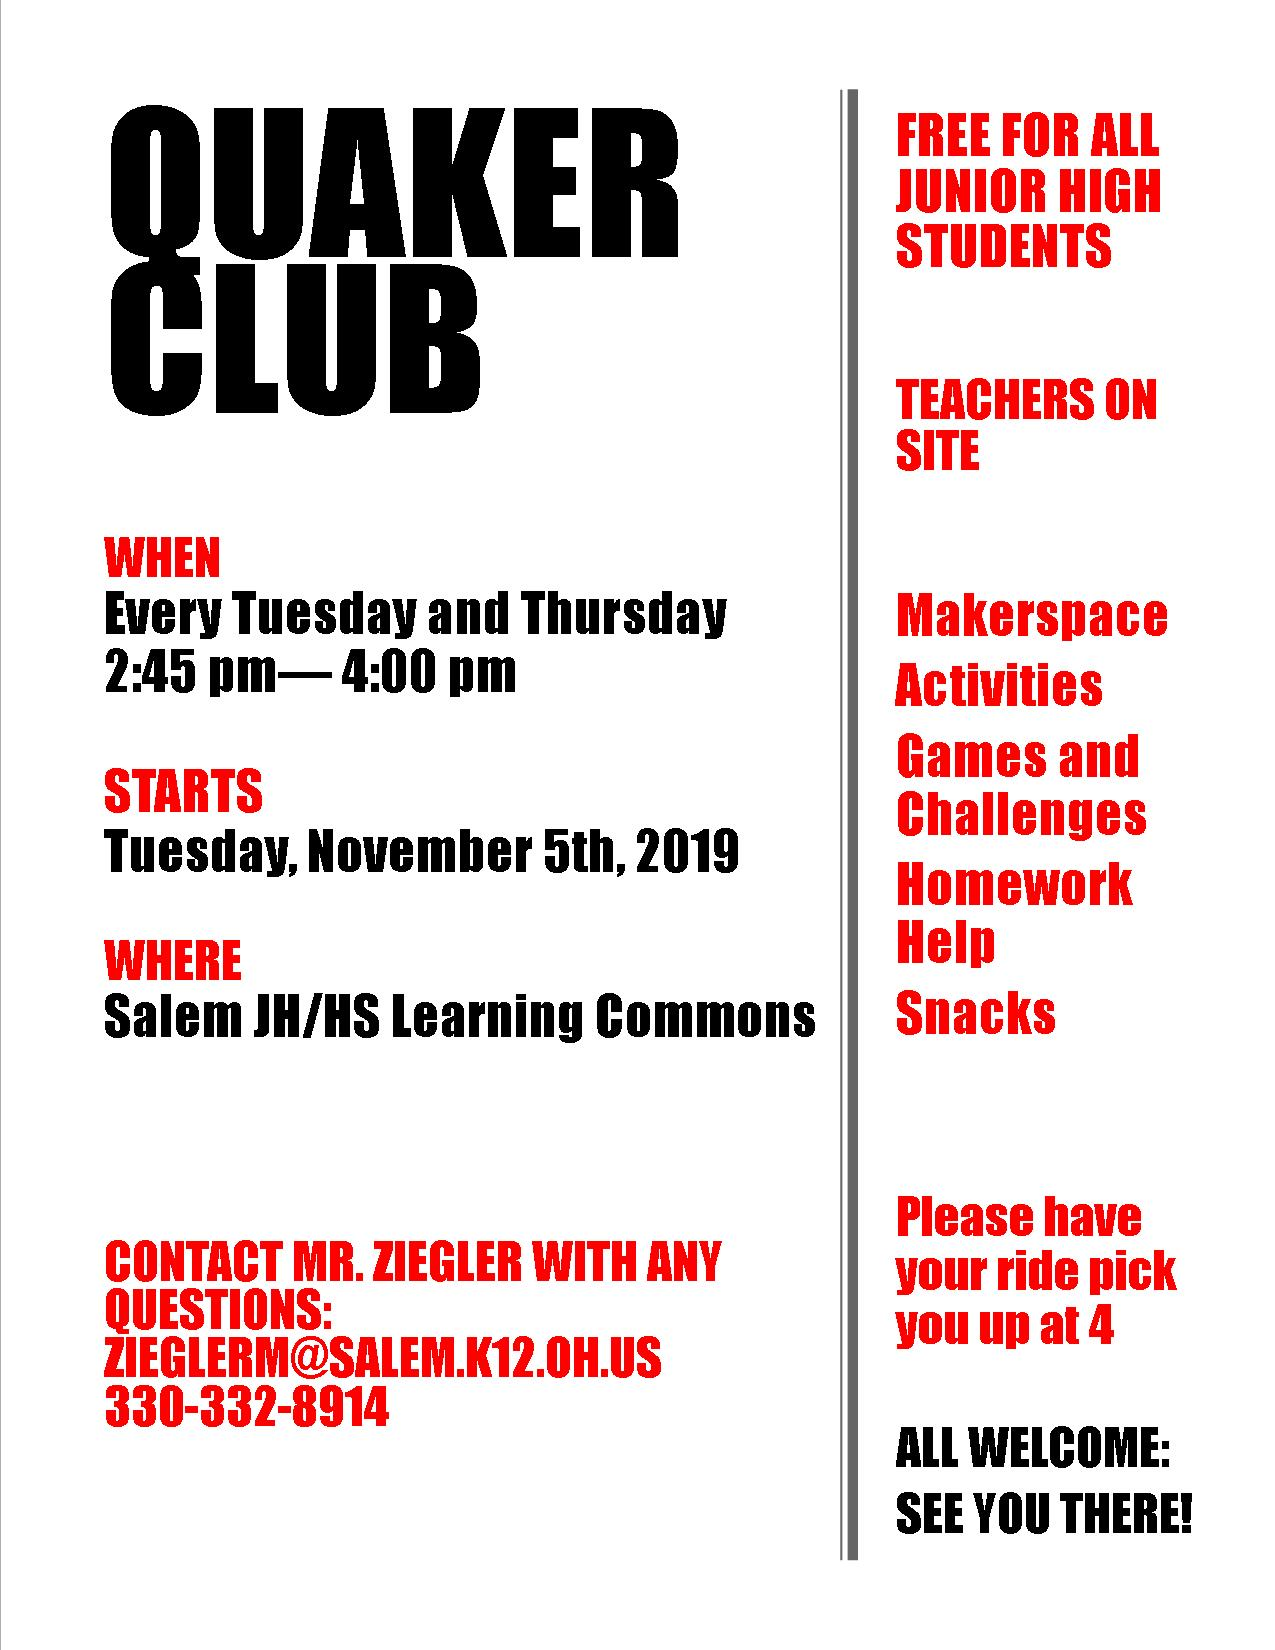 Quaker Club flyer 2019/2020